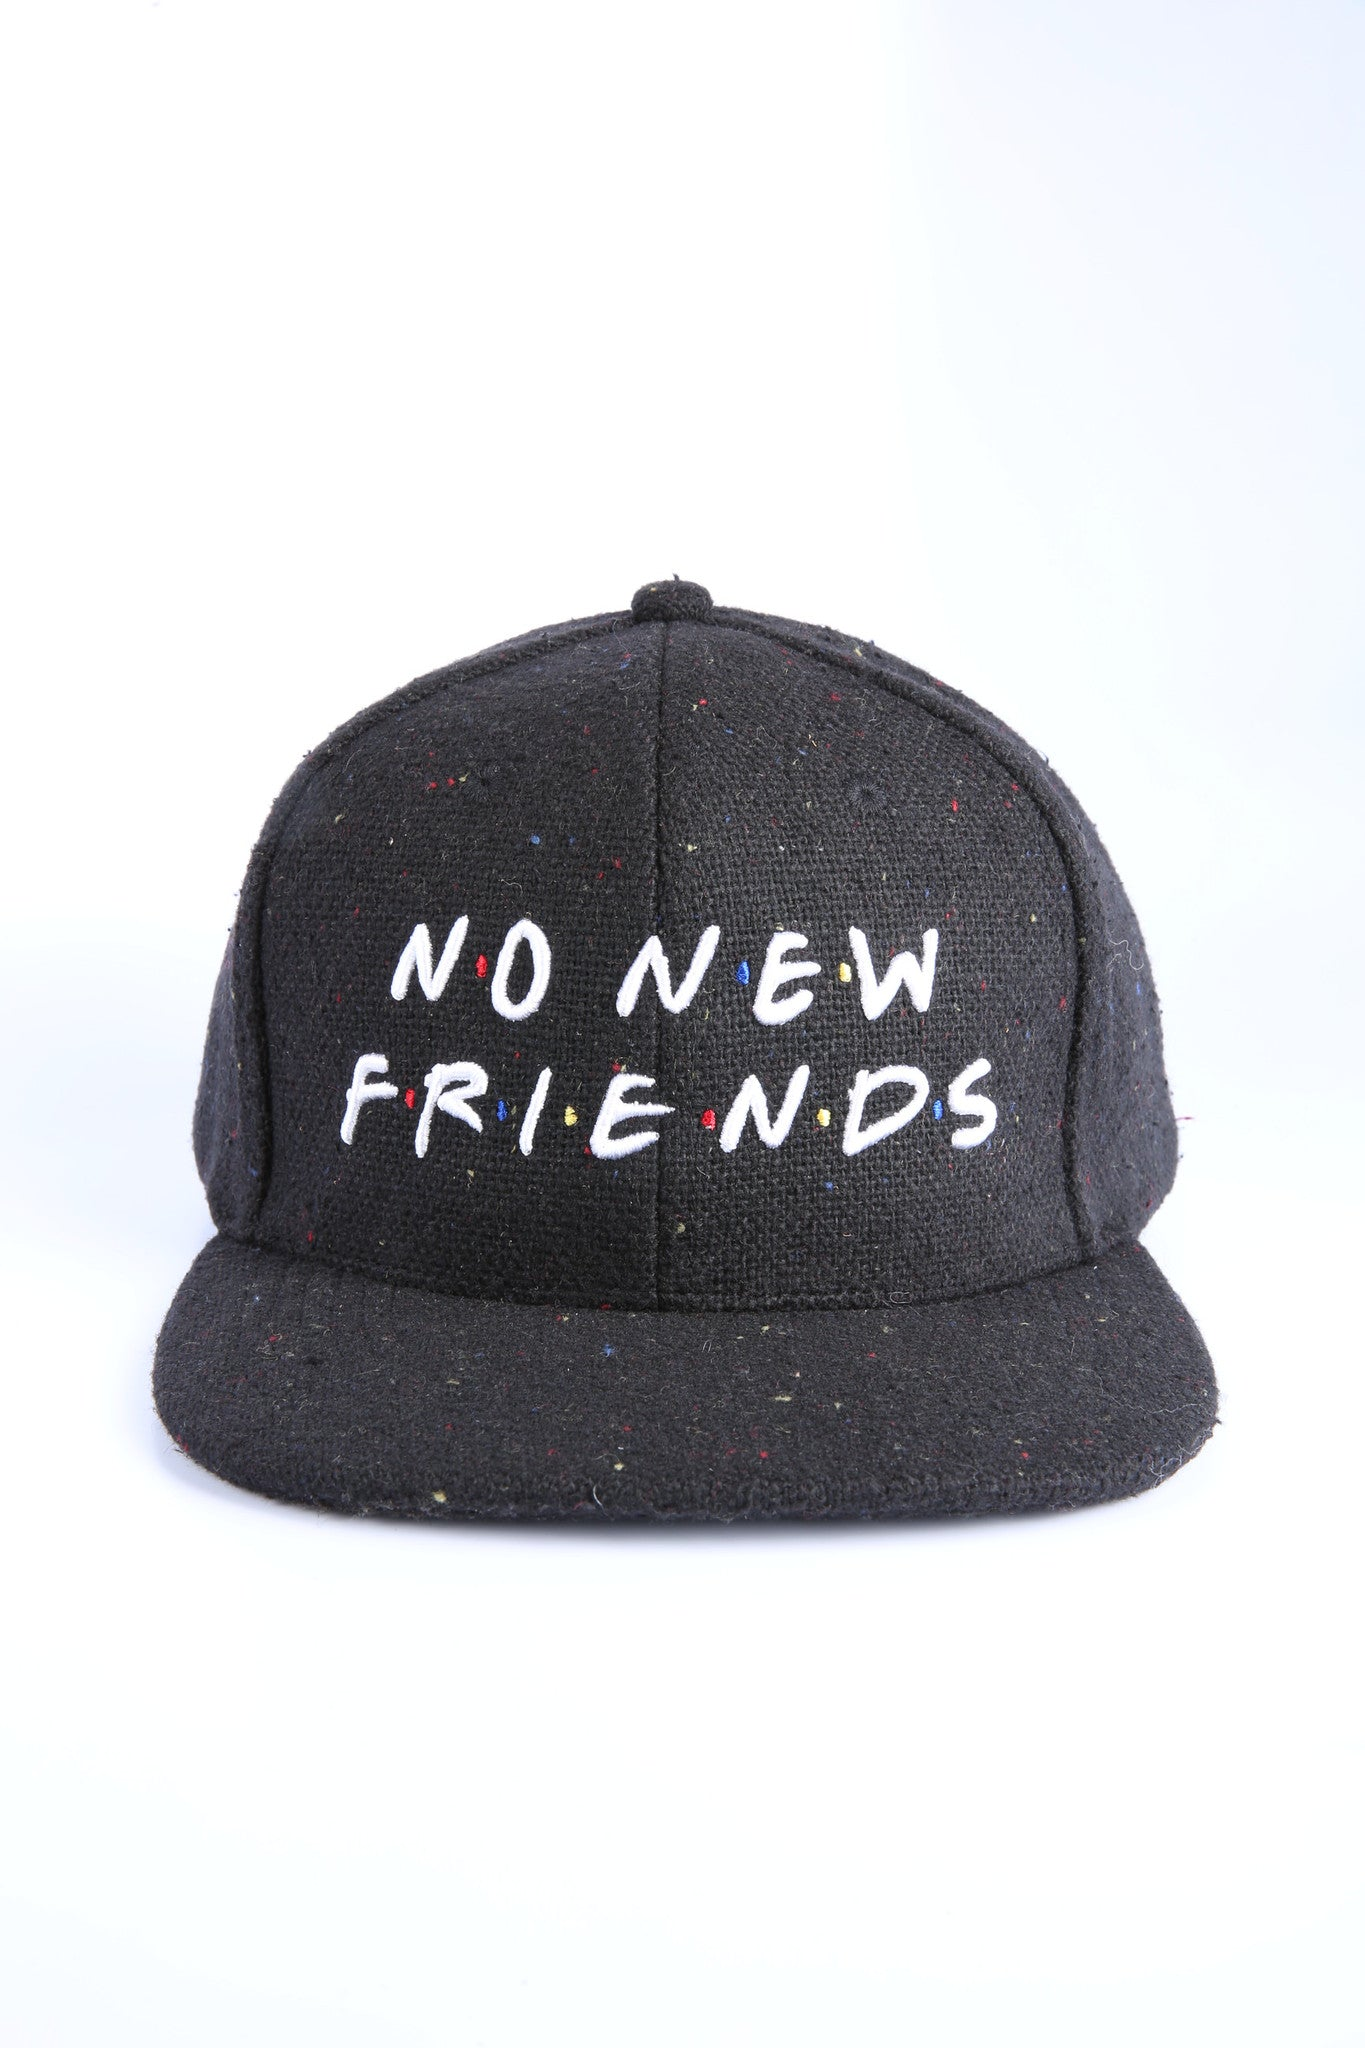 The Friends Snapback in Black Speckle